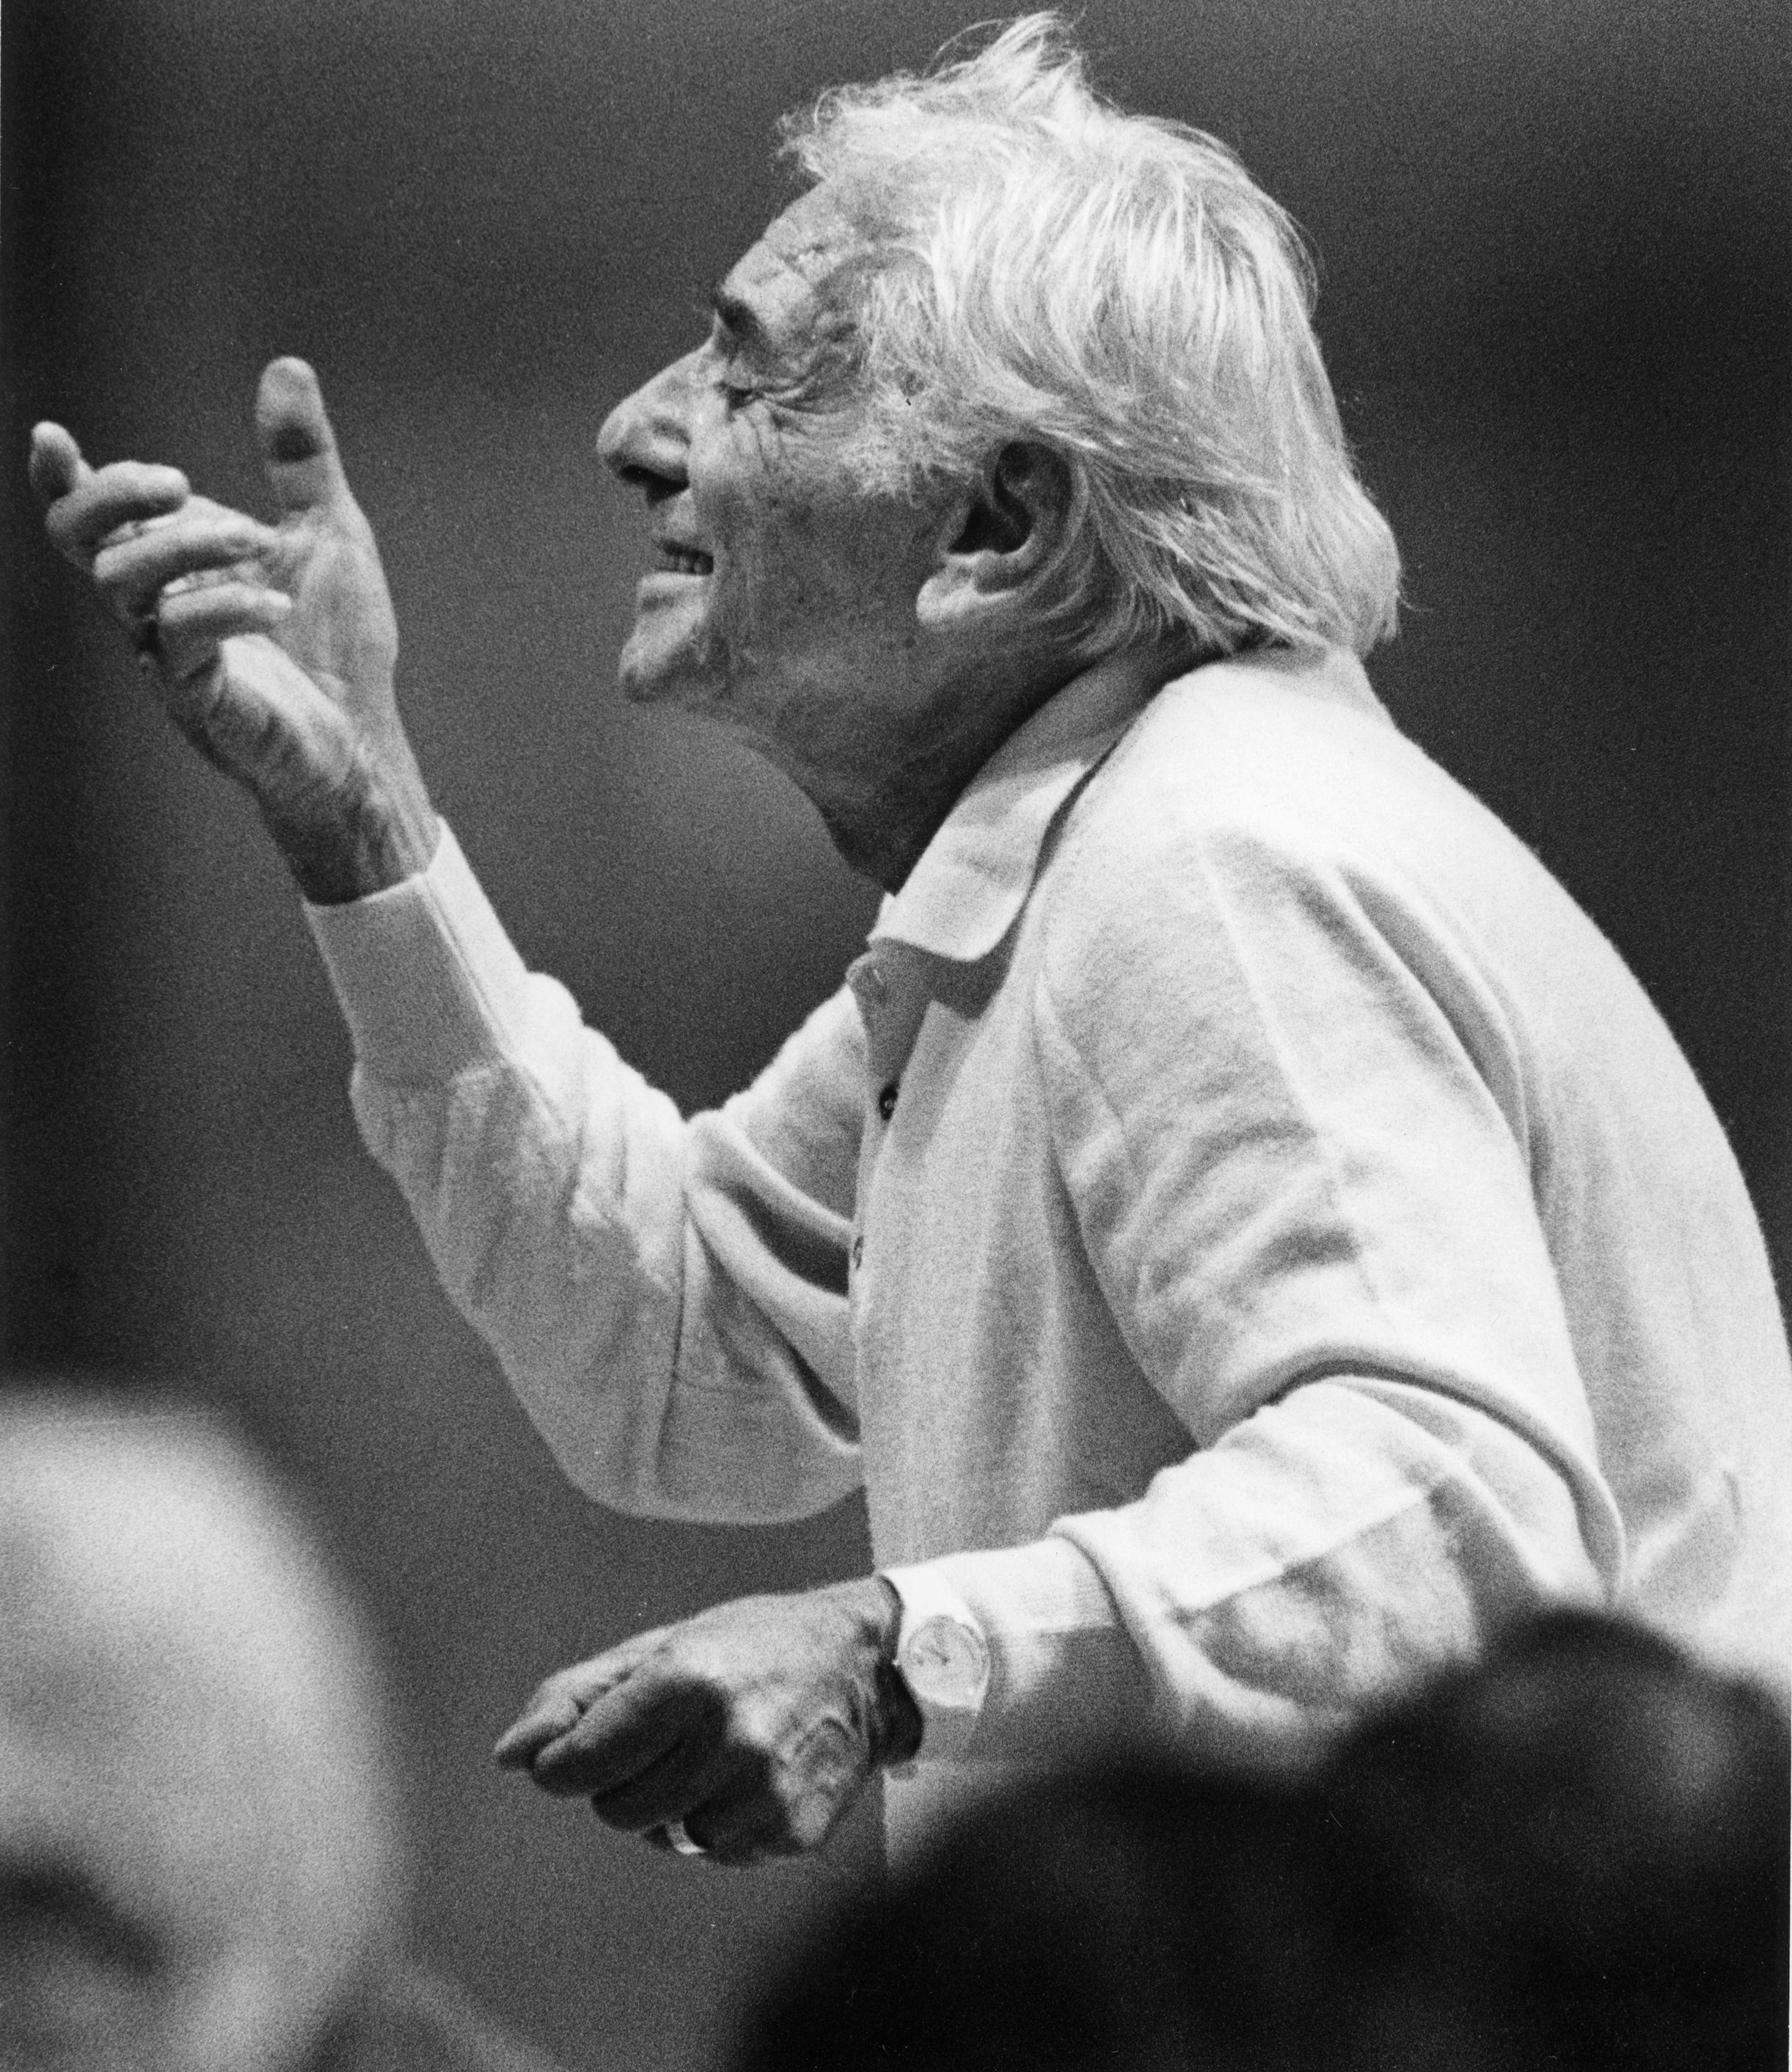 For Lenny's centennial, Tanglewood goes all in - The Boston Globe